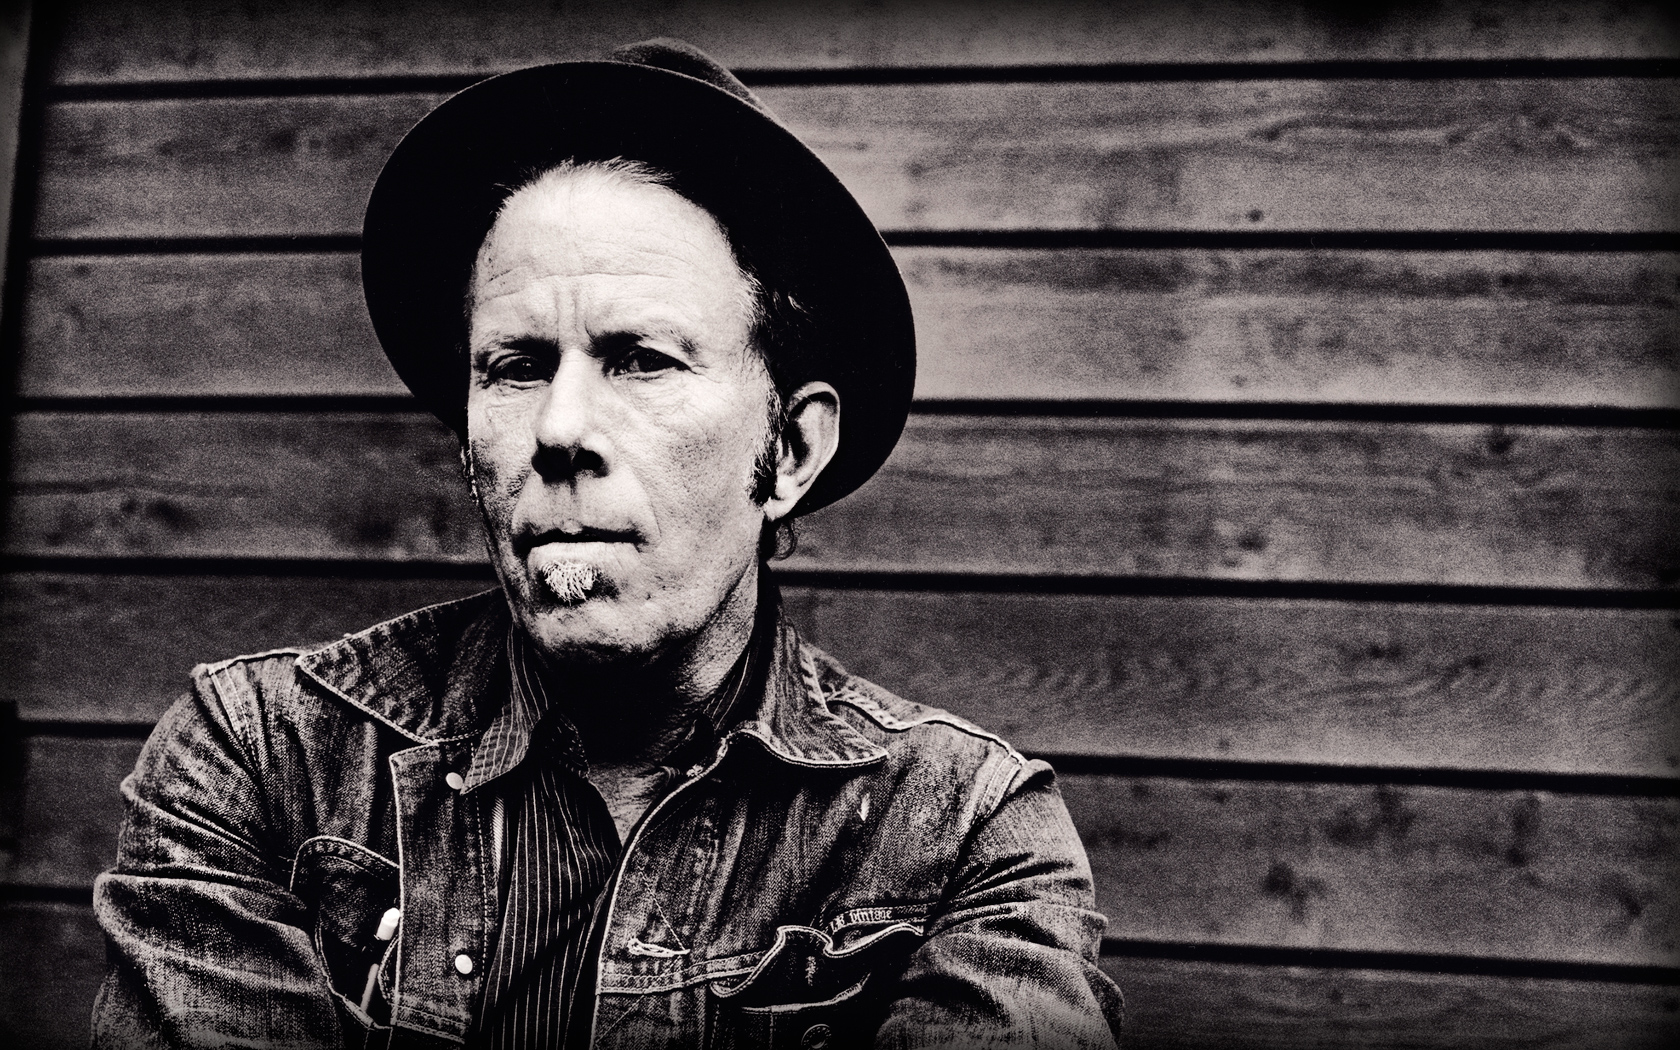 MUSIC BREAK – TOM WAITS